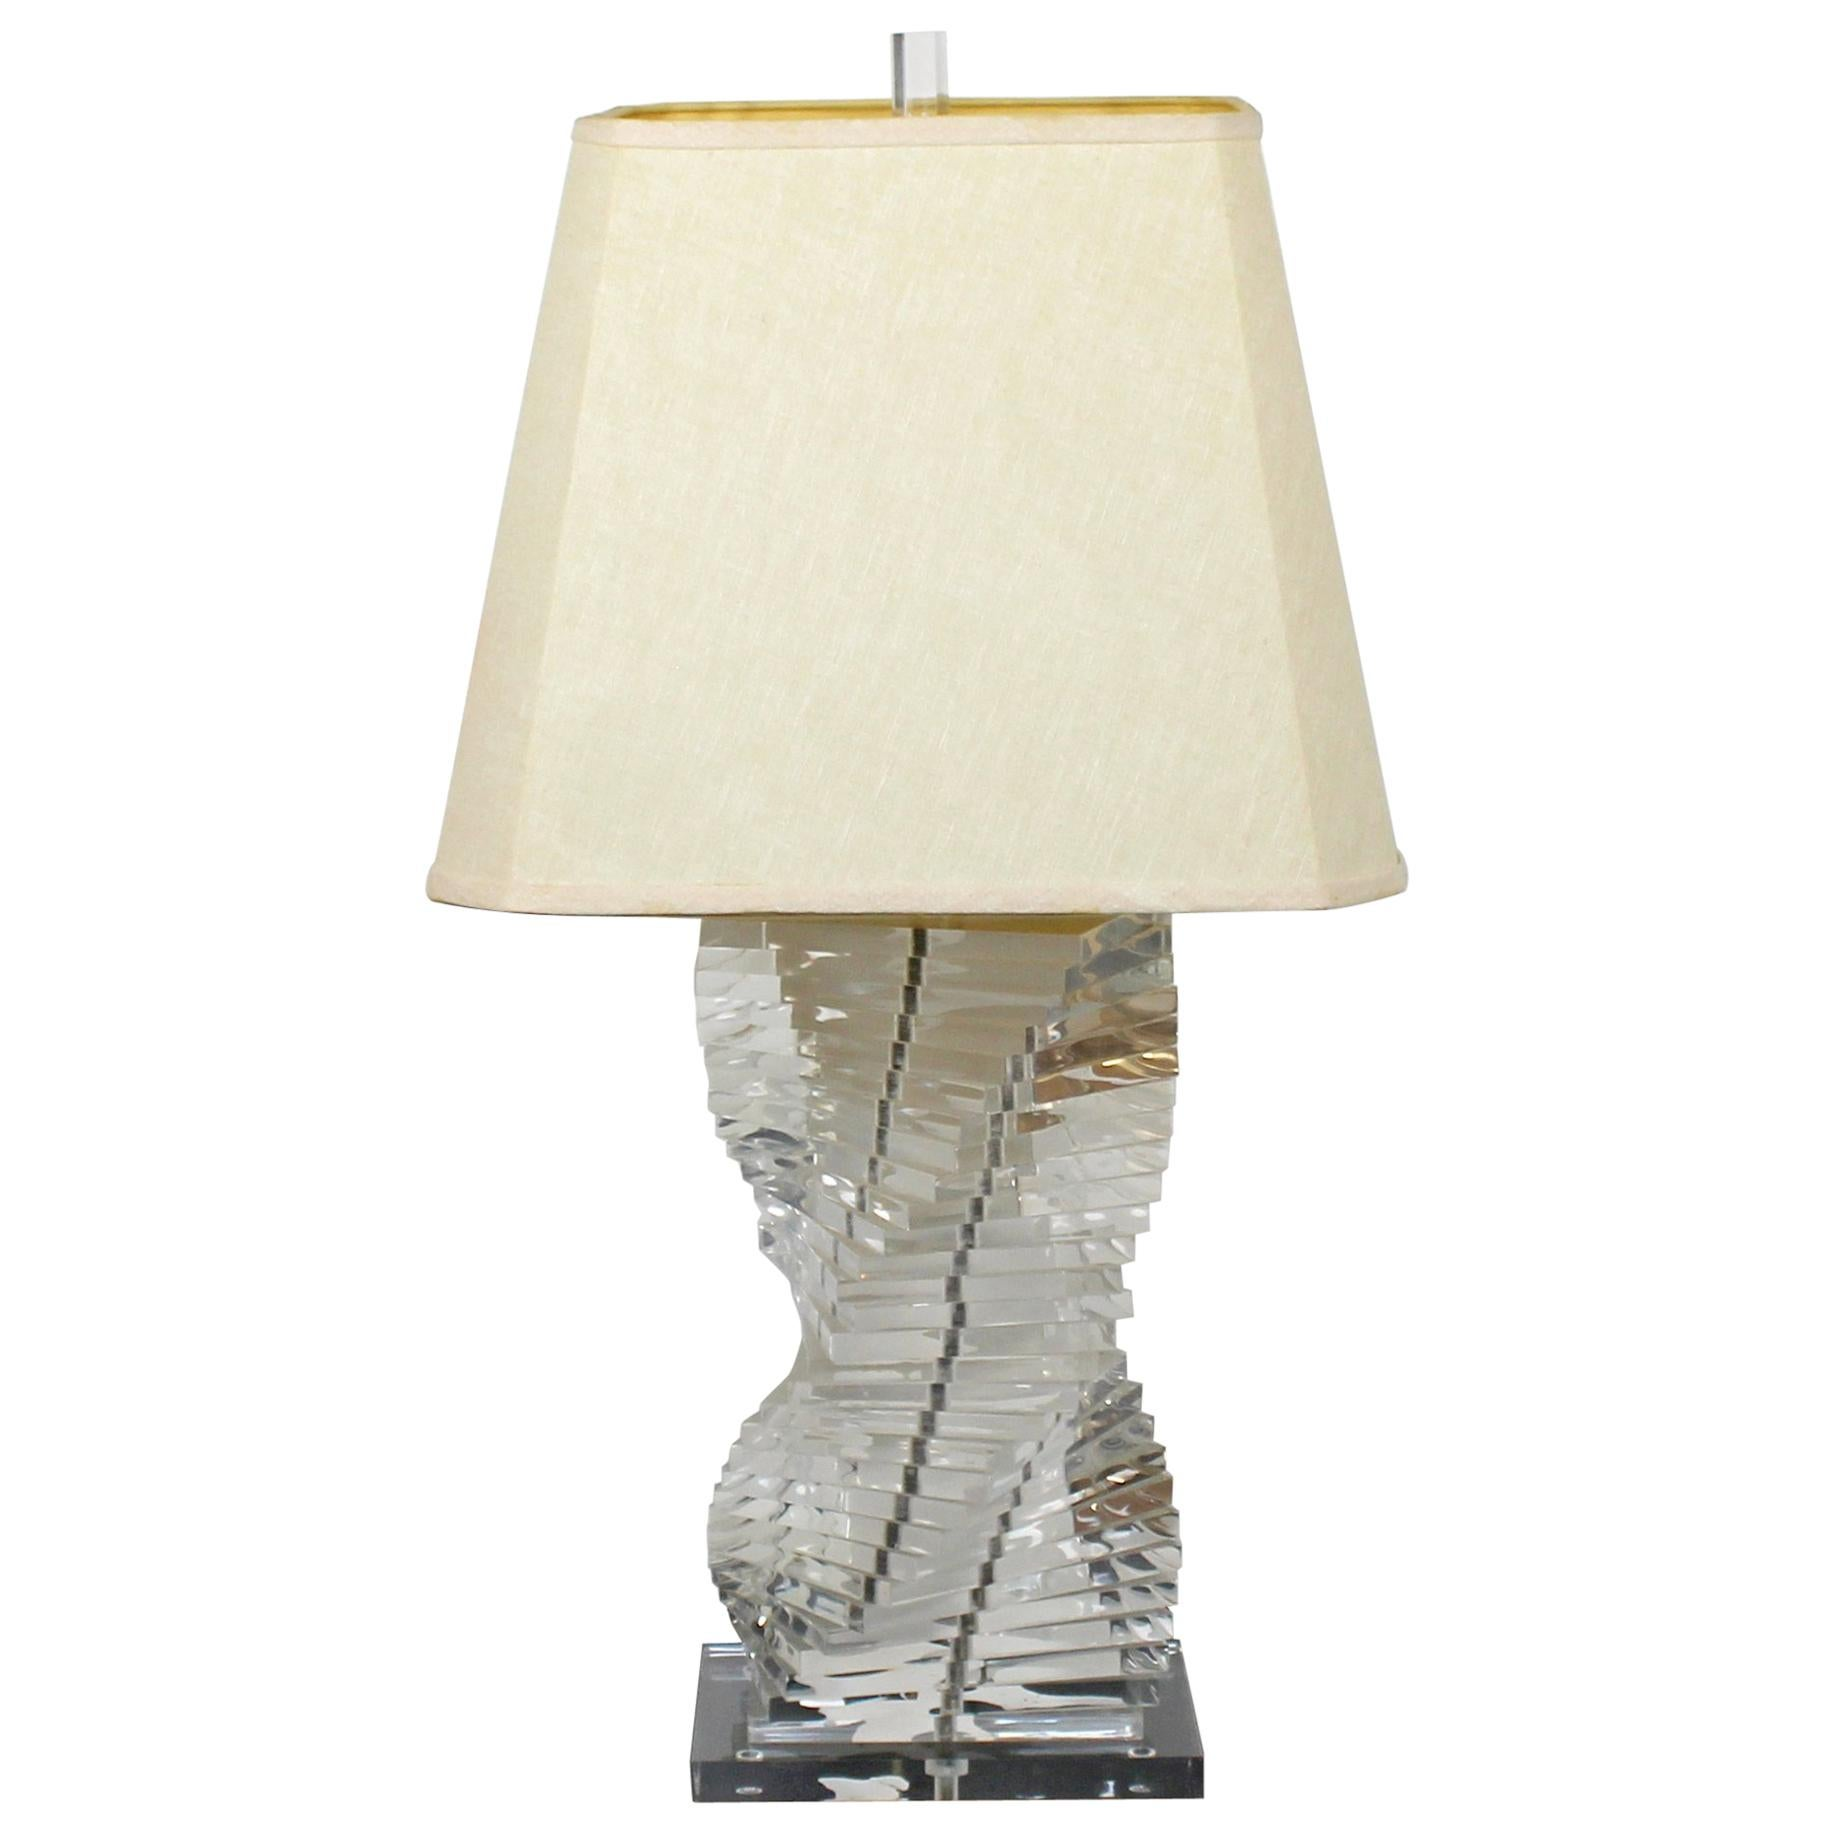 Mid-Century Modern Helix Stacked Lucite Table Lamp Original Finial